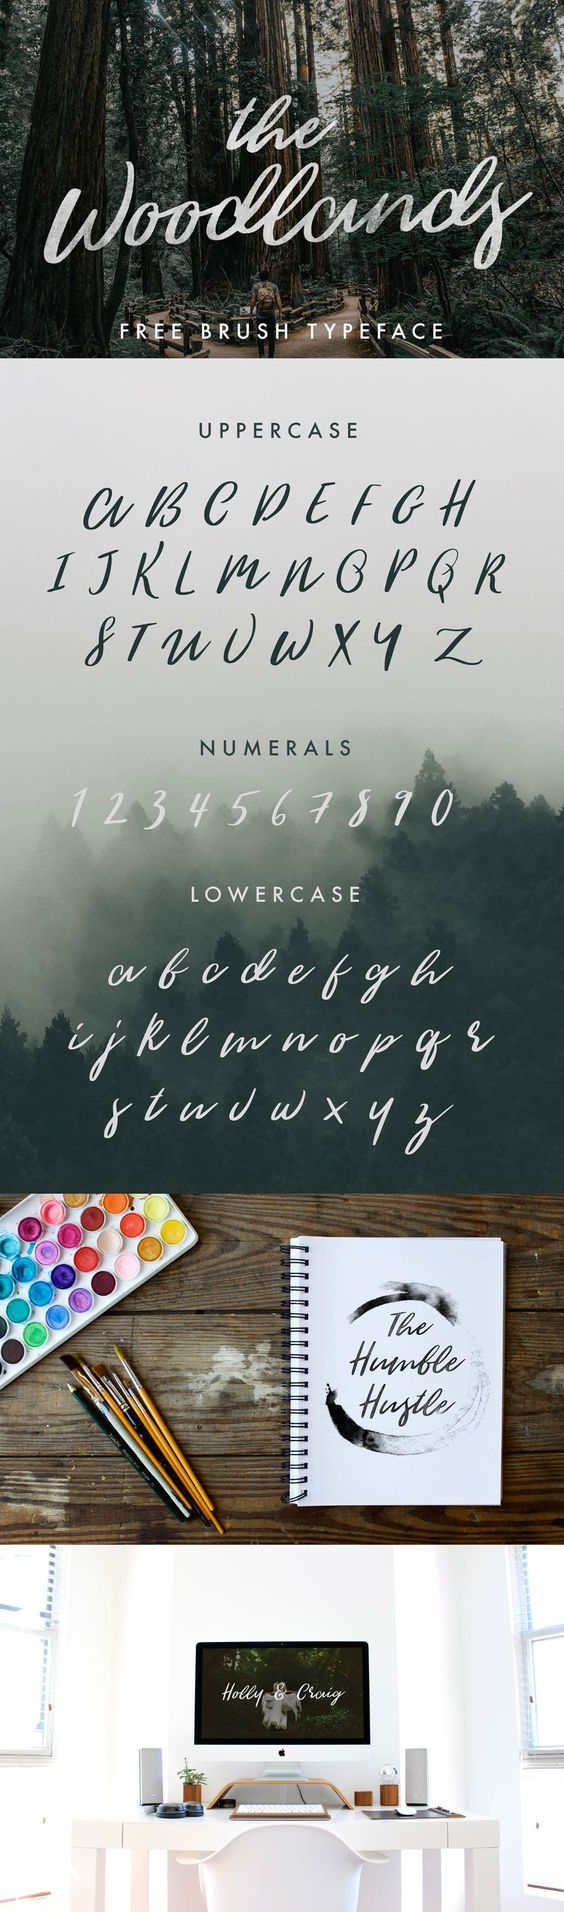 THE WOODLANDS - FREE FONT par Jeremy Vessey - 28